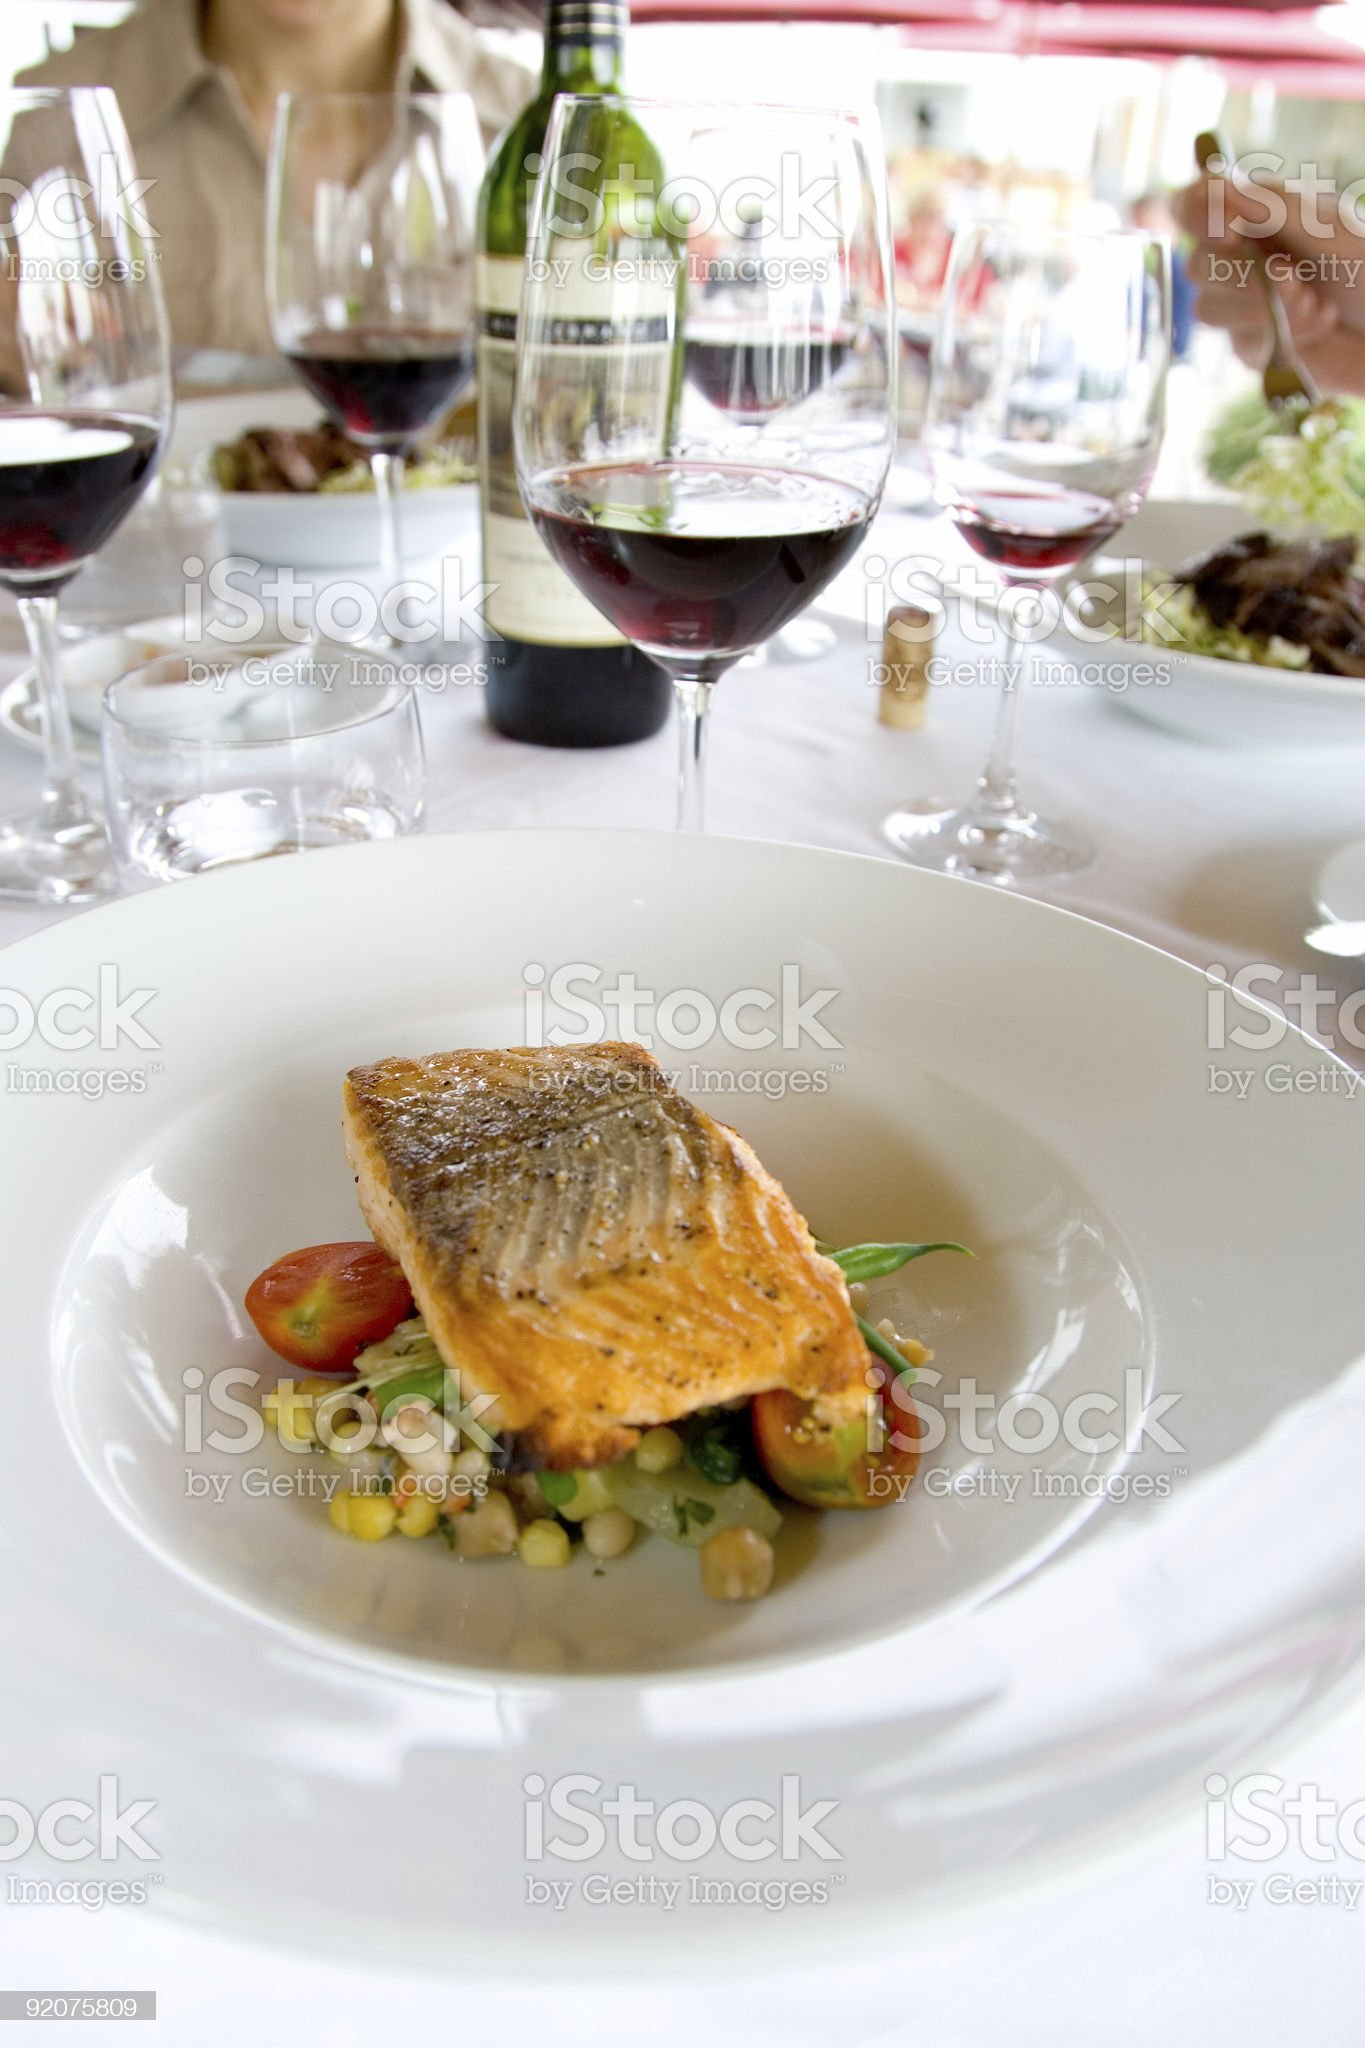 Food - Eating Grilled Salmon on Mixed Greens with Friends royalty-free stock photo